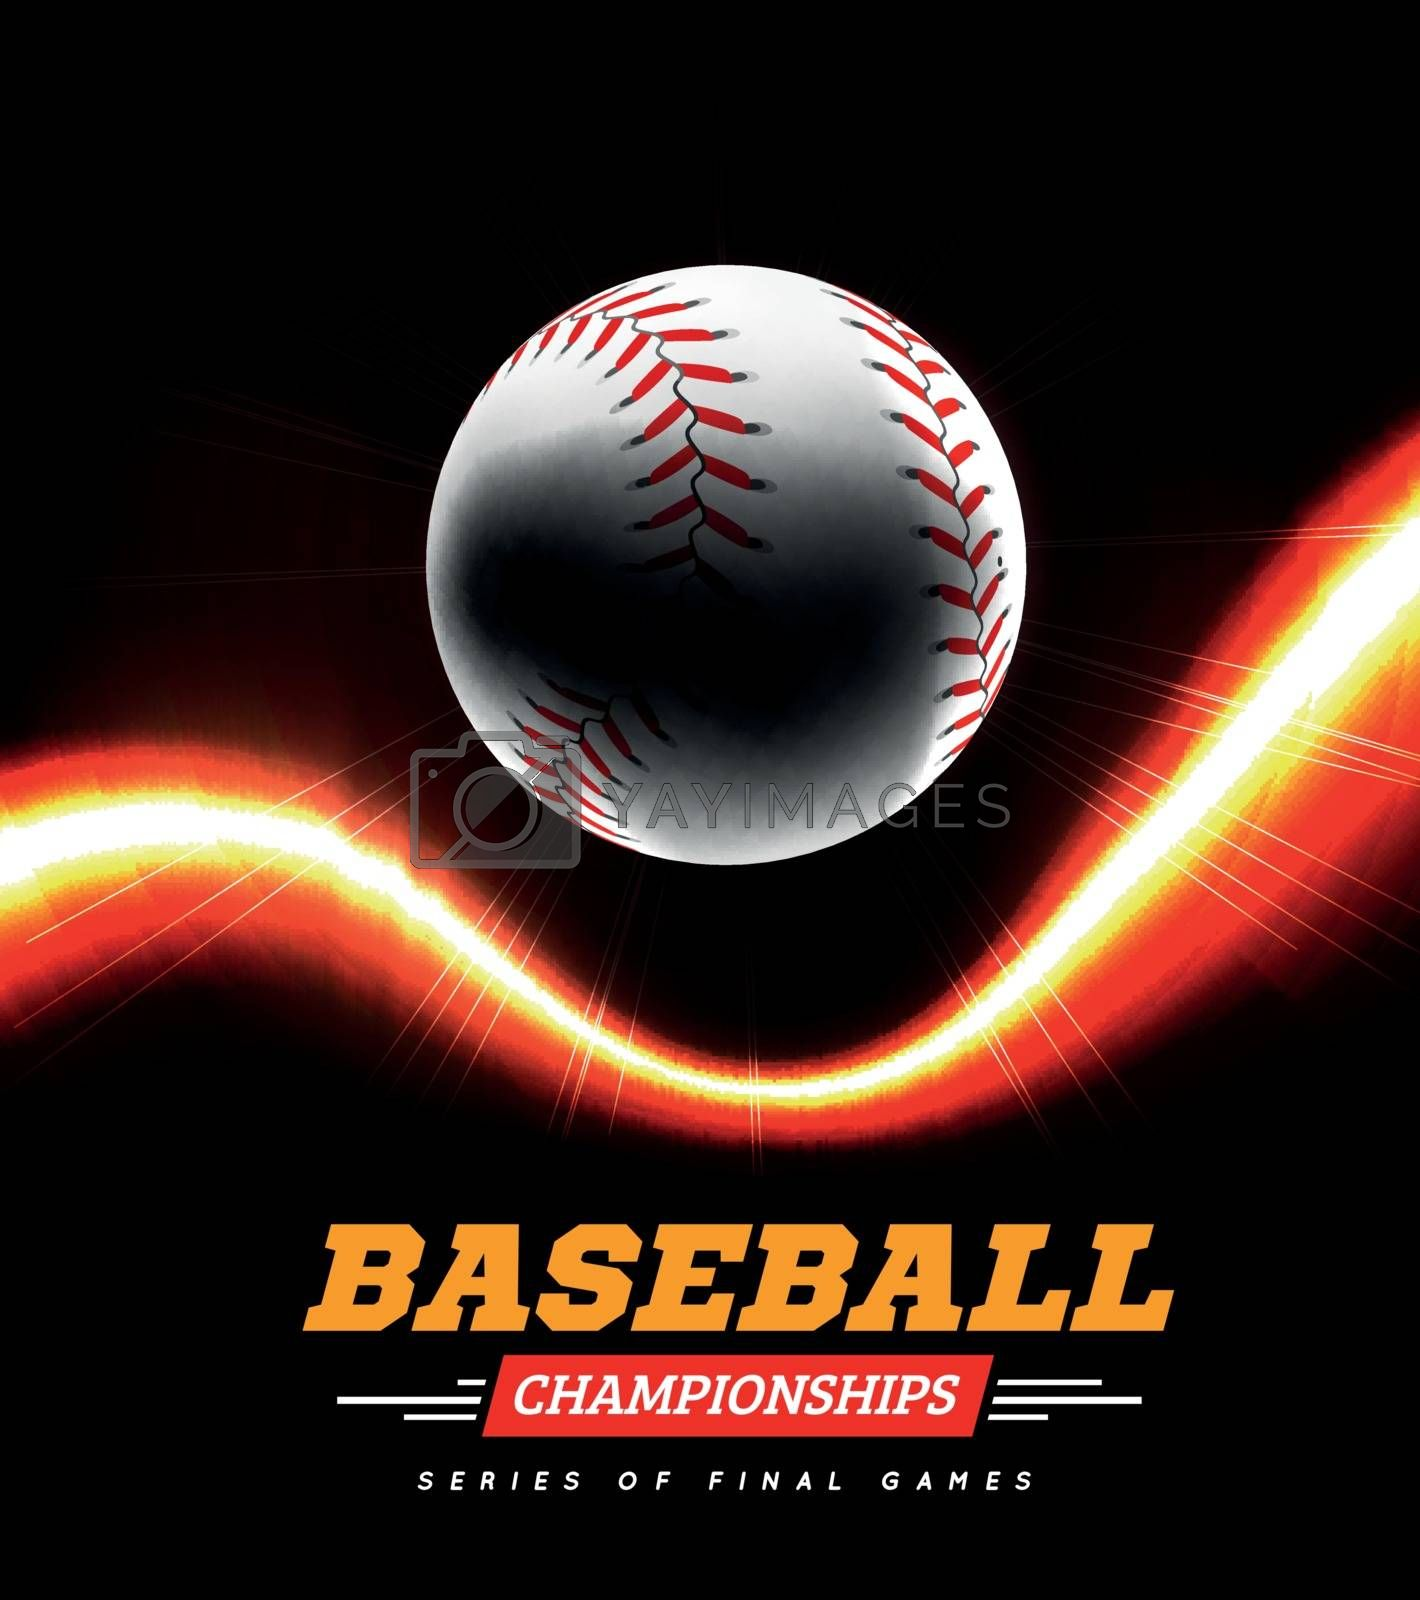 Royalty free image of Baseball in the backlight on a black background with a flight path in the form of a light beam. by sermax55